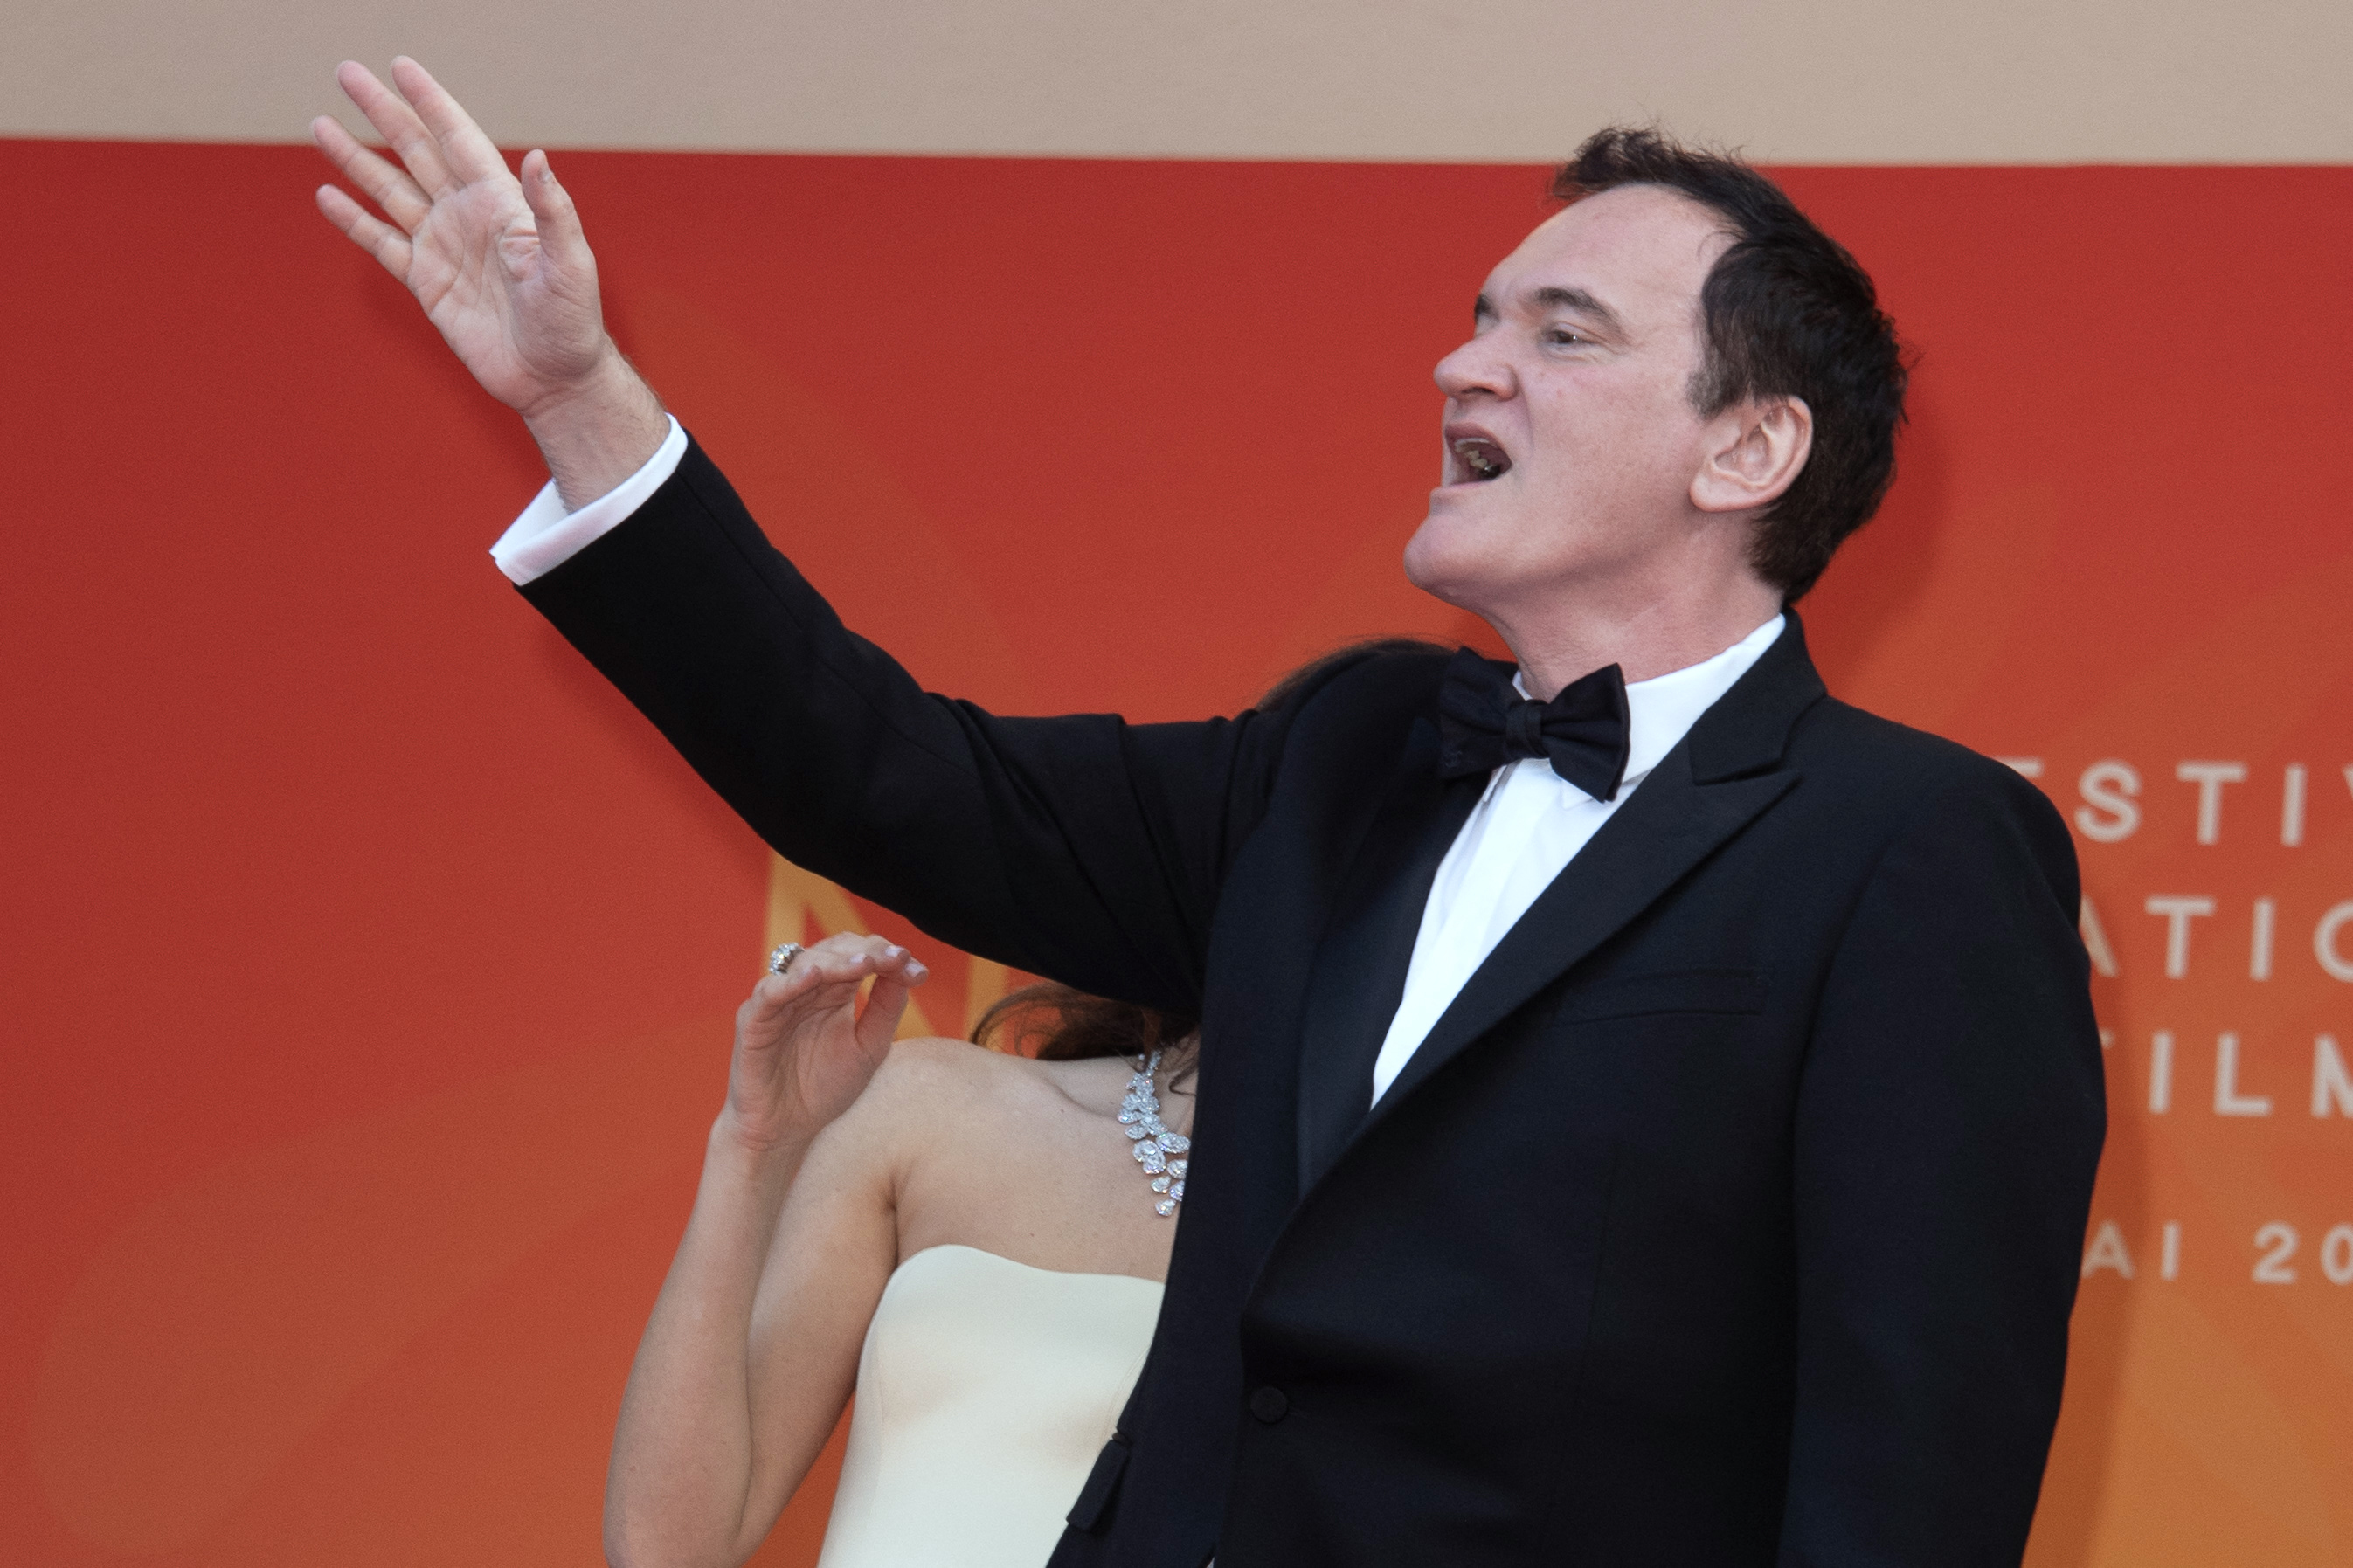 Quentin Tarantino: Have been talking about 'Kill Bill 3' with Uma Thurman